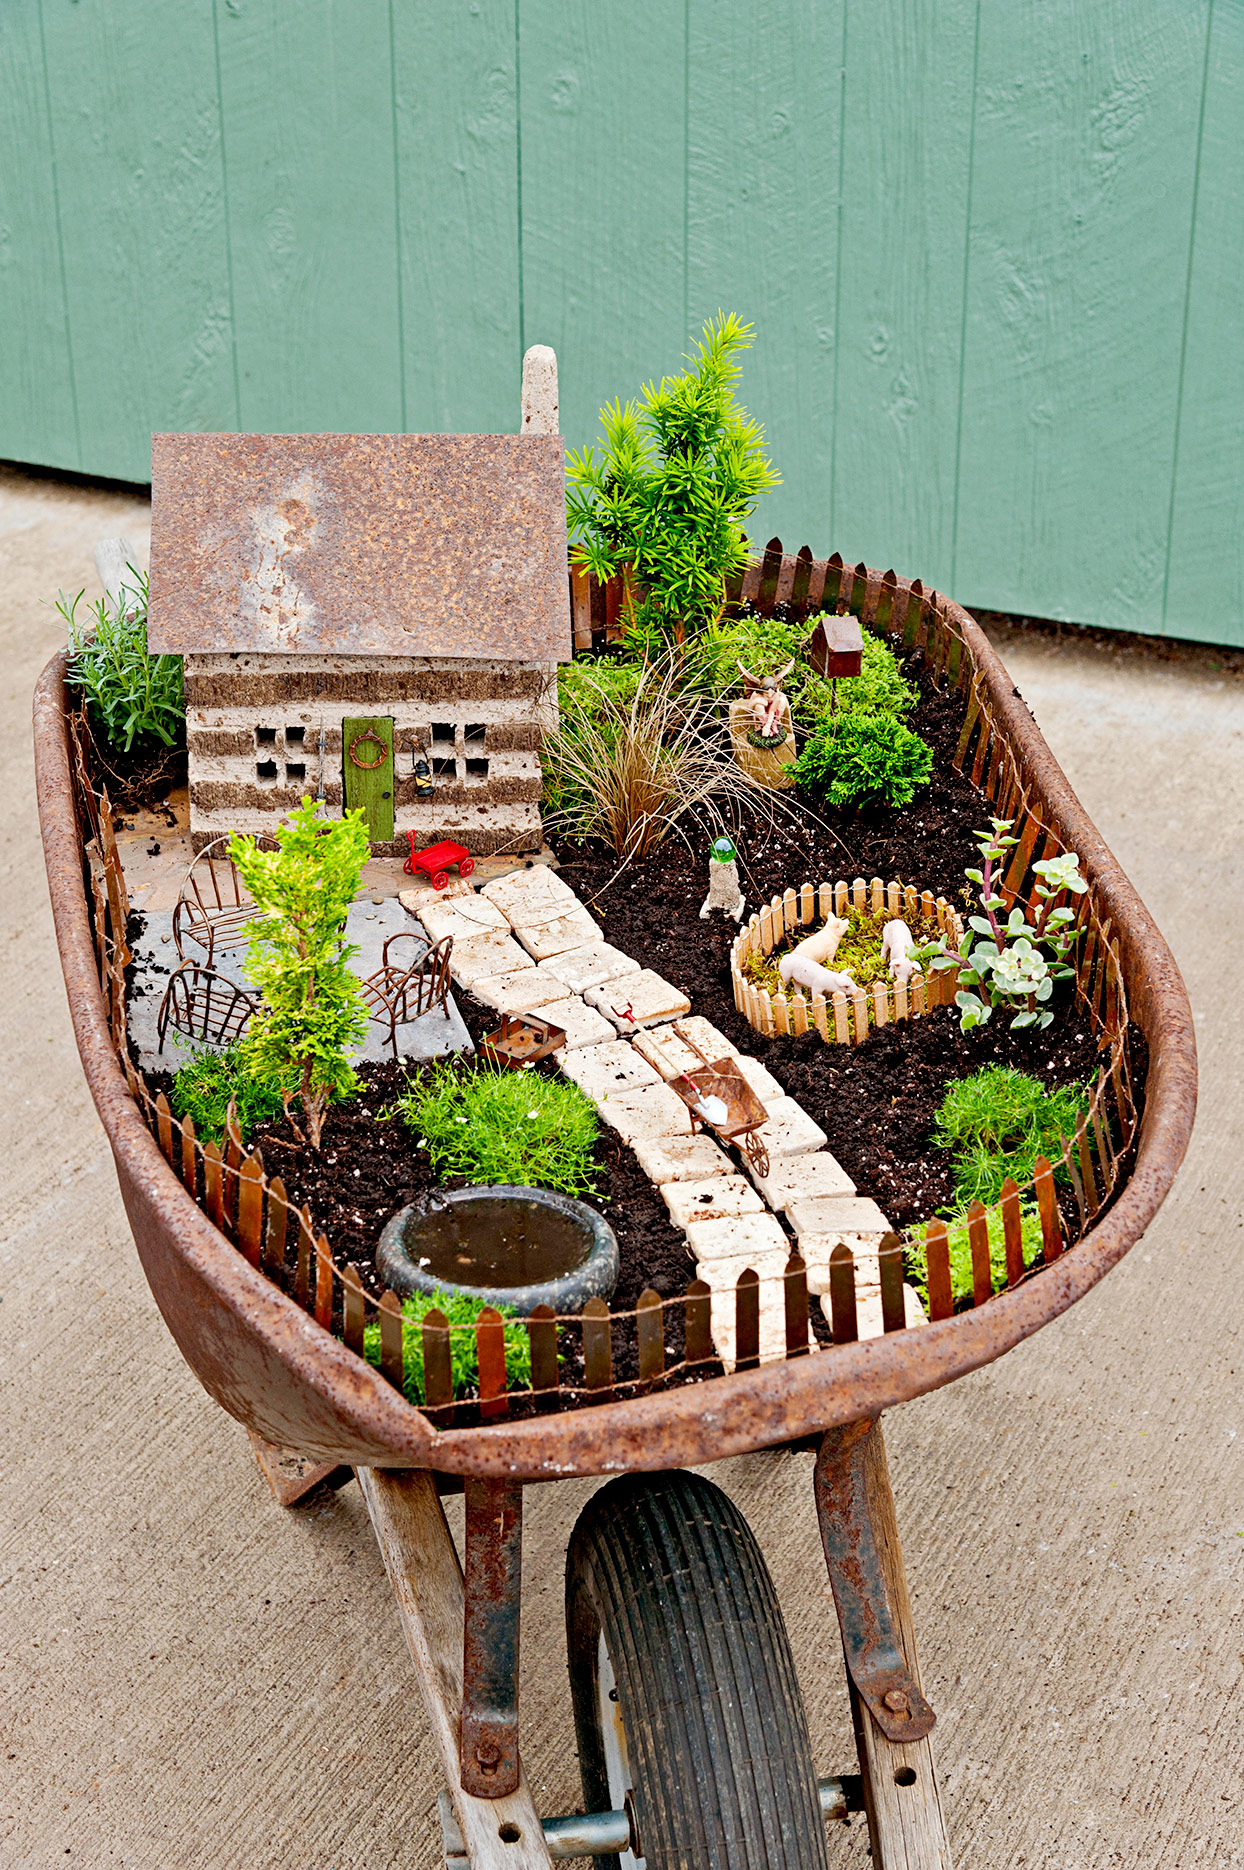 How To Make An Adorable Broken Pot Fairy Garden In 4 Easy Steps